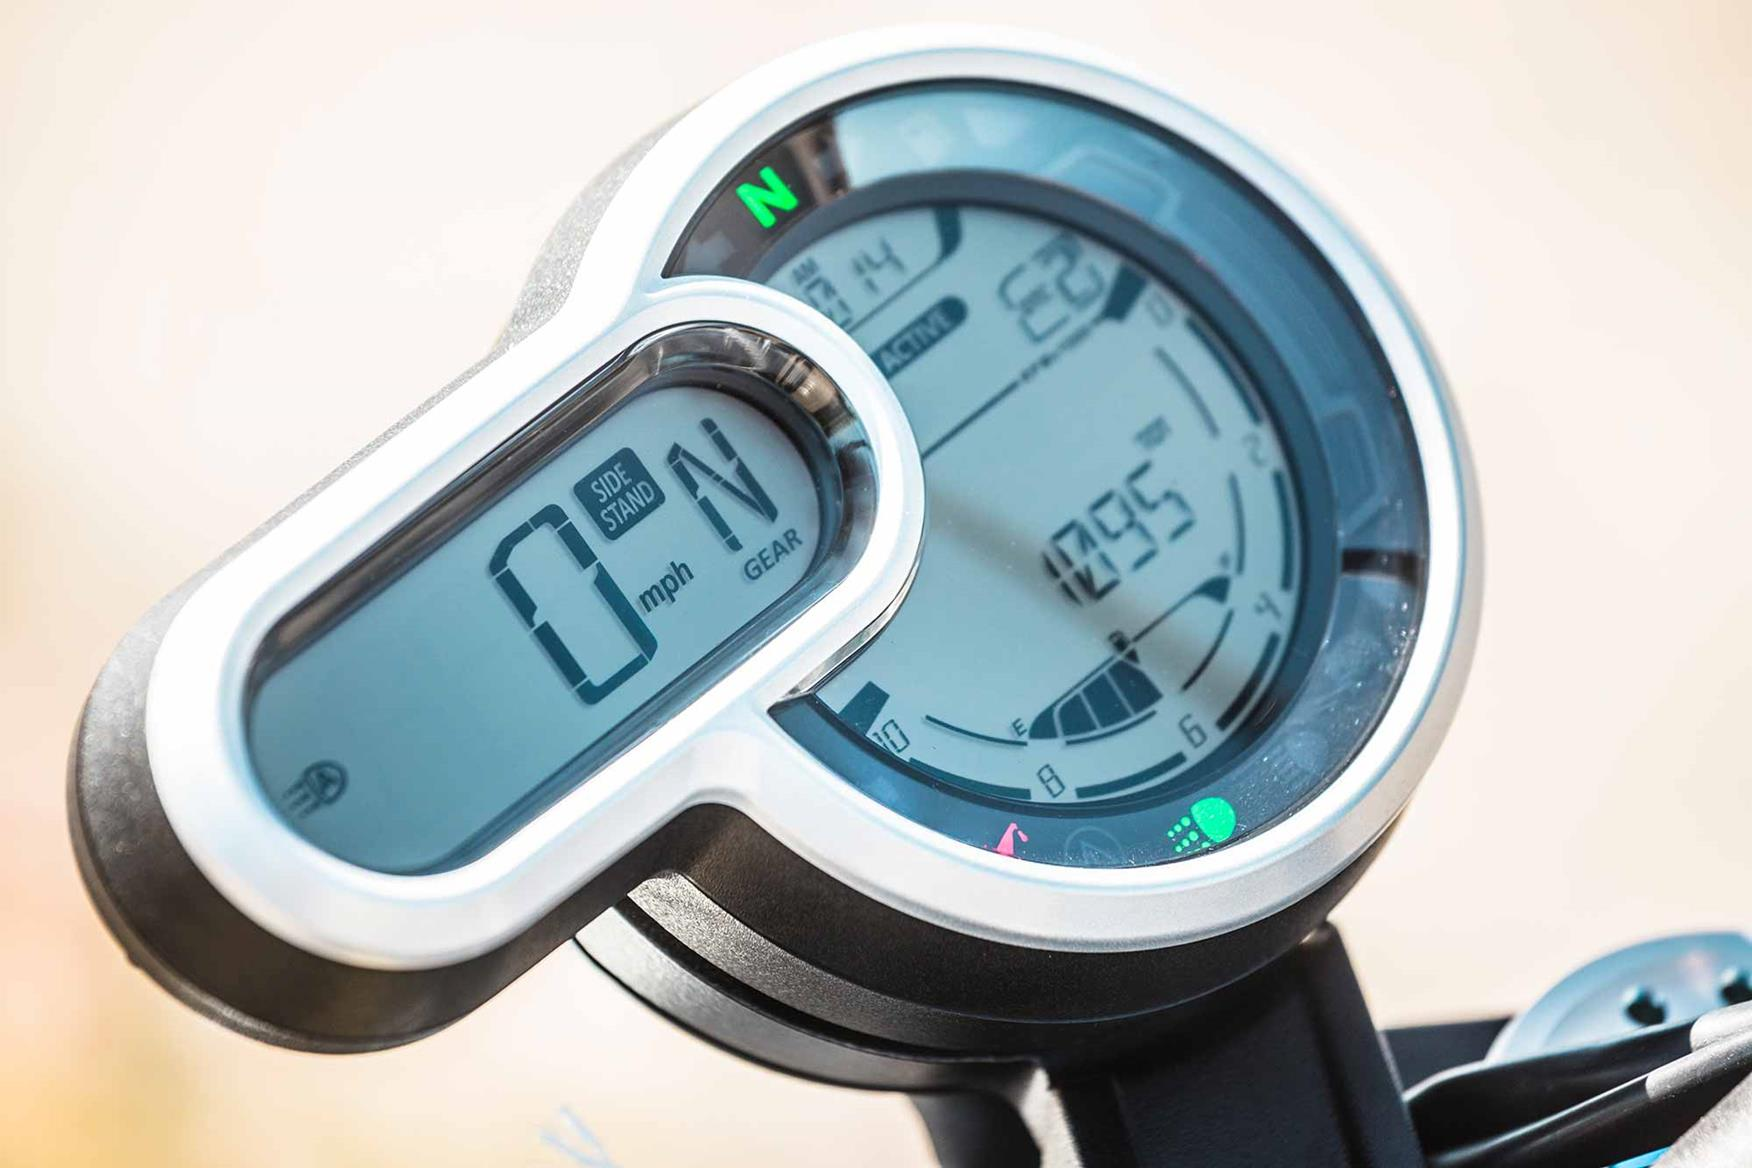 Ducati Scrambler 1100 clocks